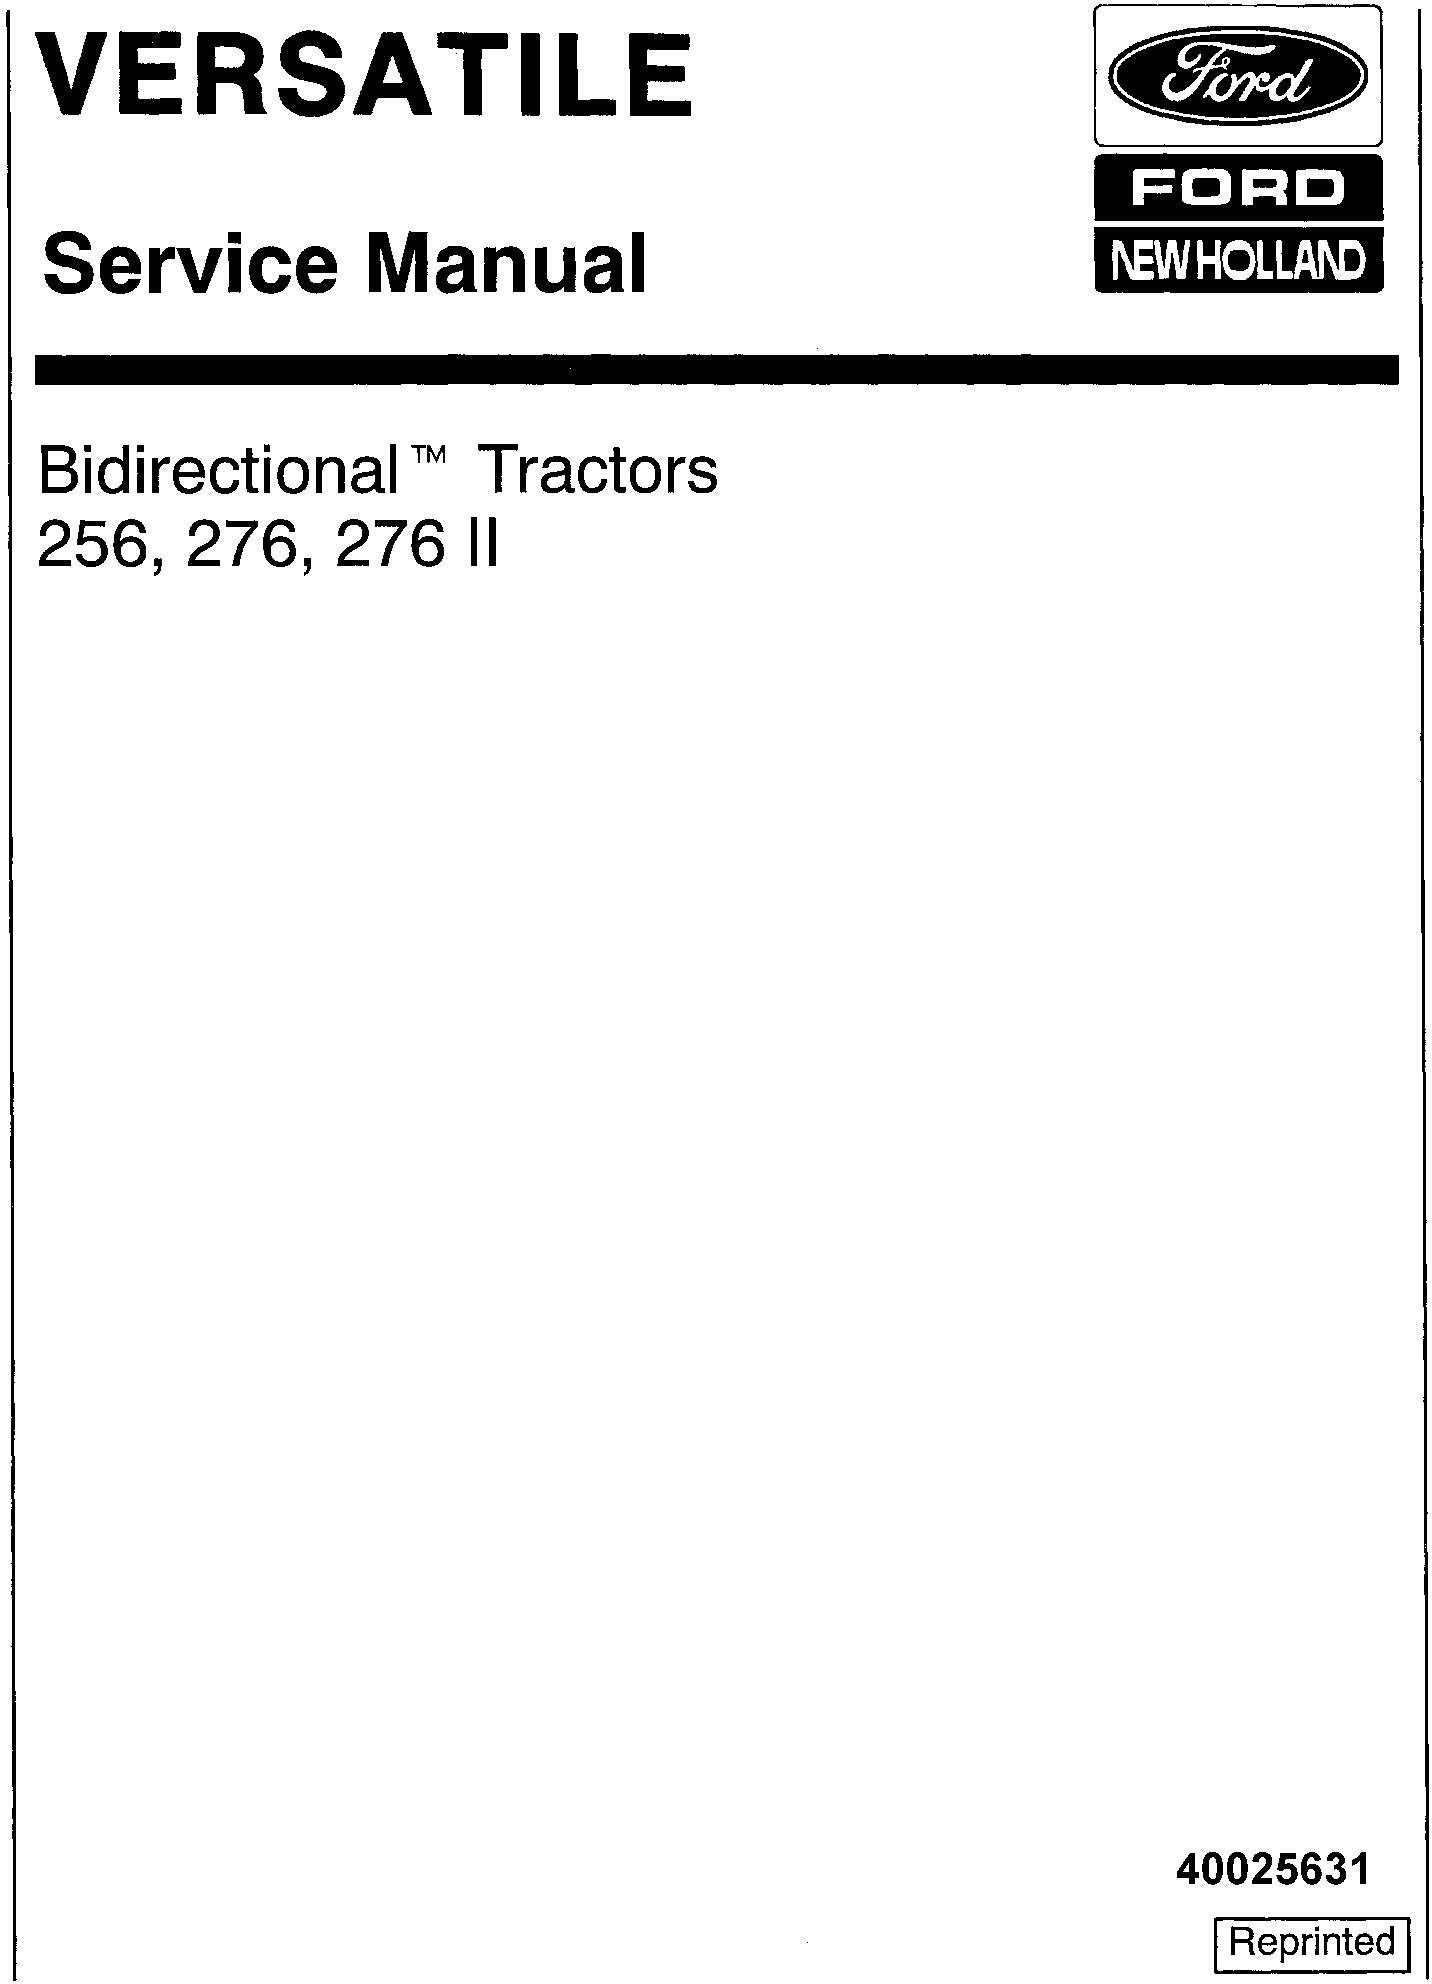 Ford 256, 276, 276 II Bi-directional Versatile Tractor Service Manual